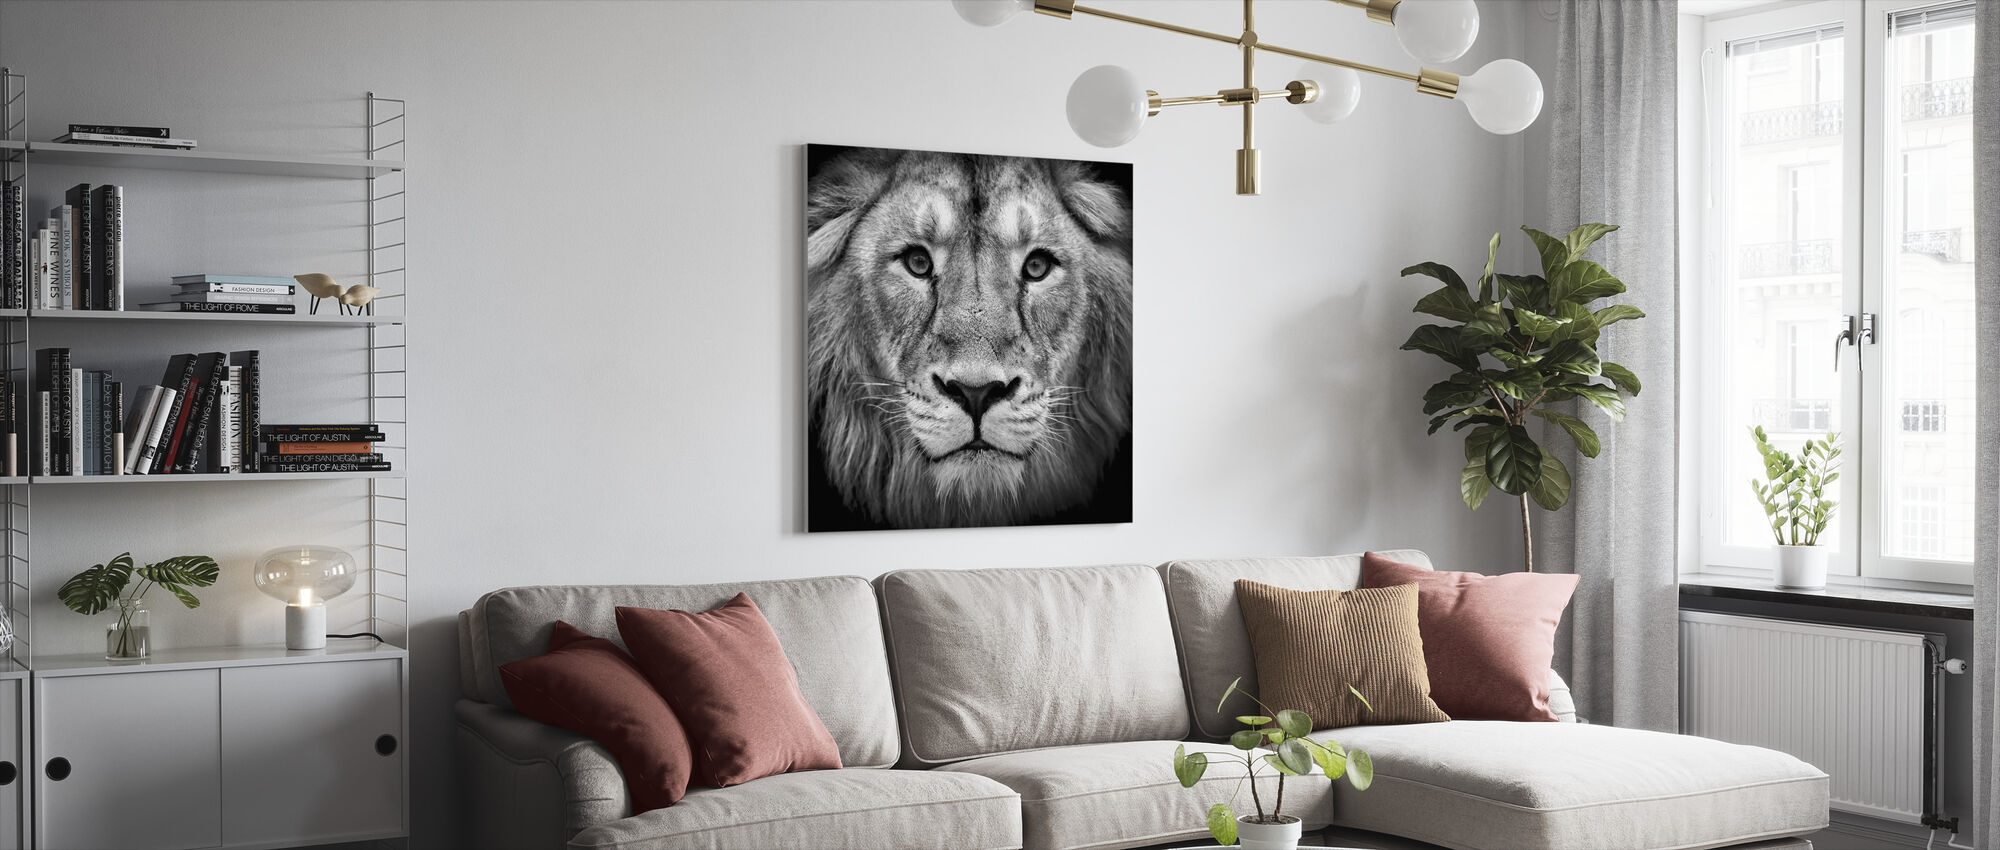 Wise Lion, black and white - Canvas print - Living Room